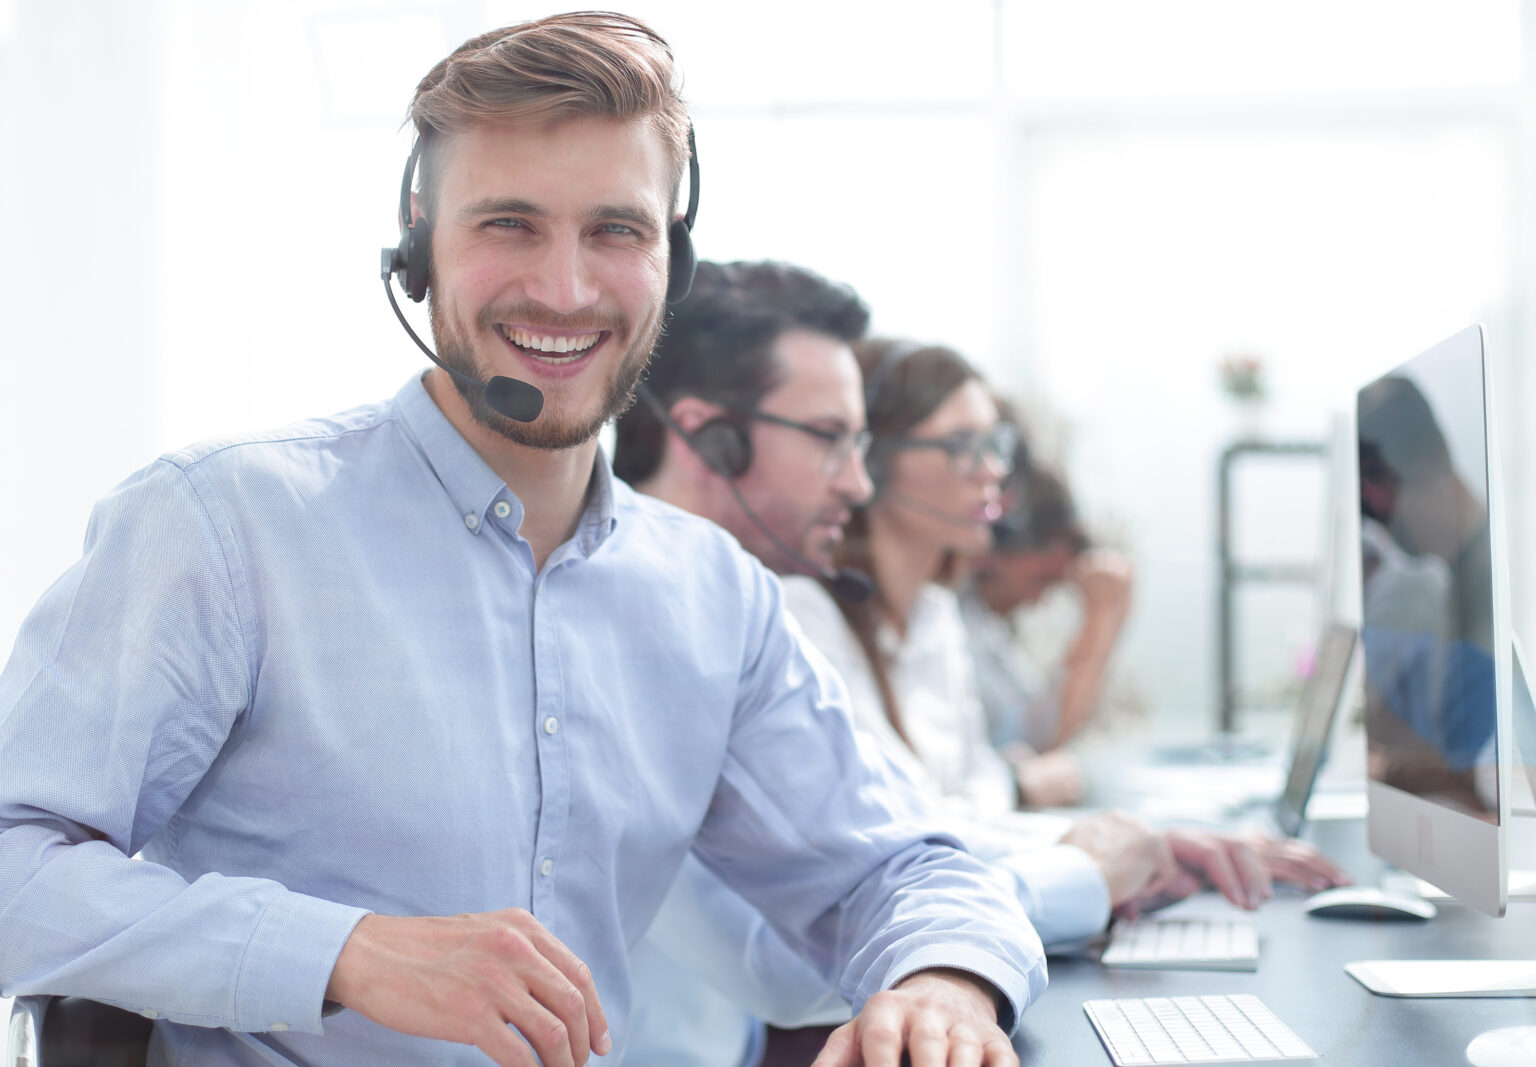 Male front - group of answering service operators